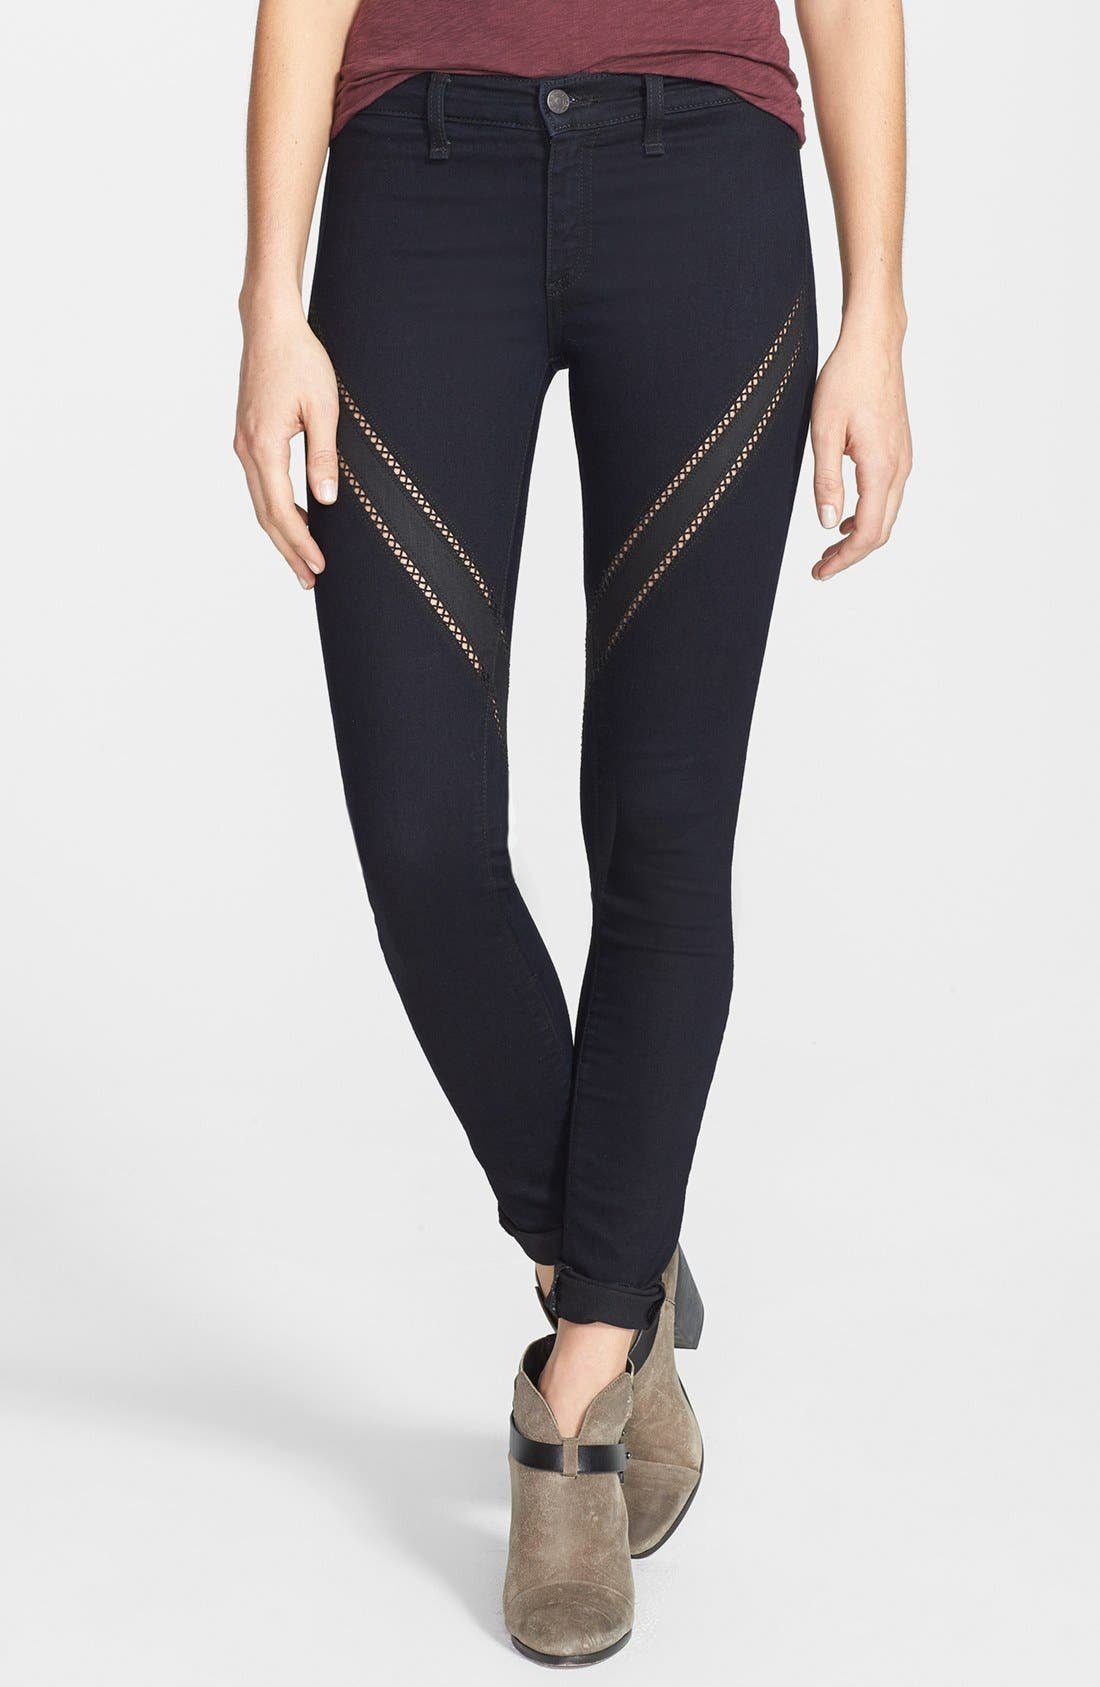 Main Image - rag & bone/JEAN Ribbon Trim Skinny Jeans (Midnight)